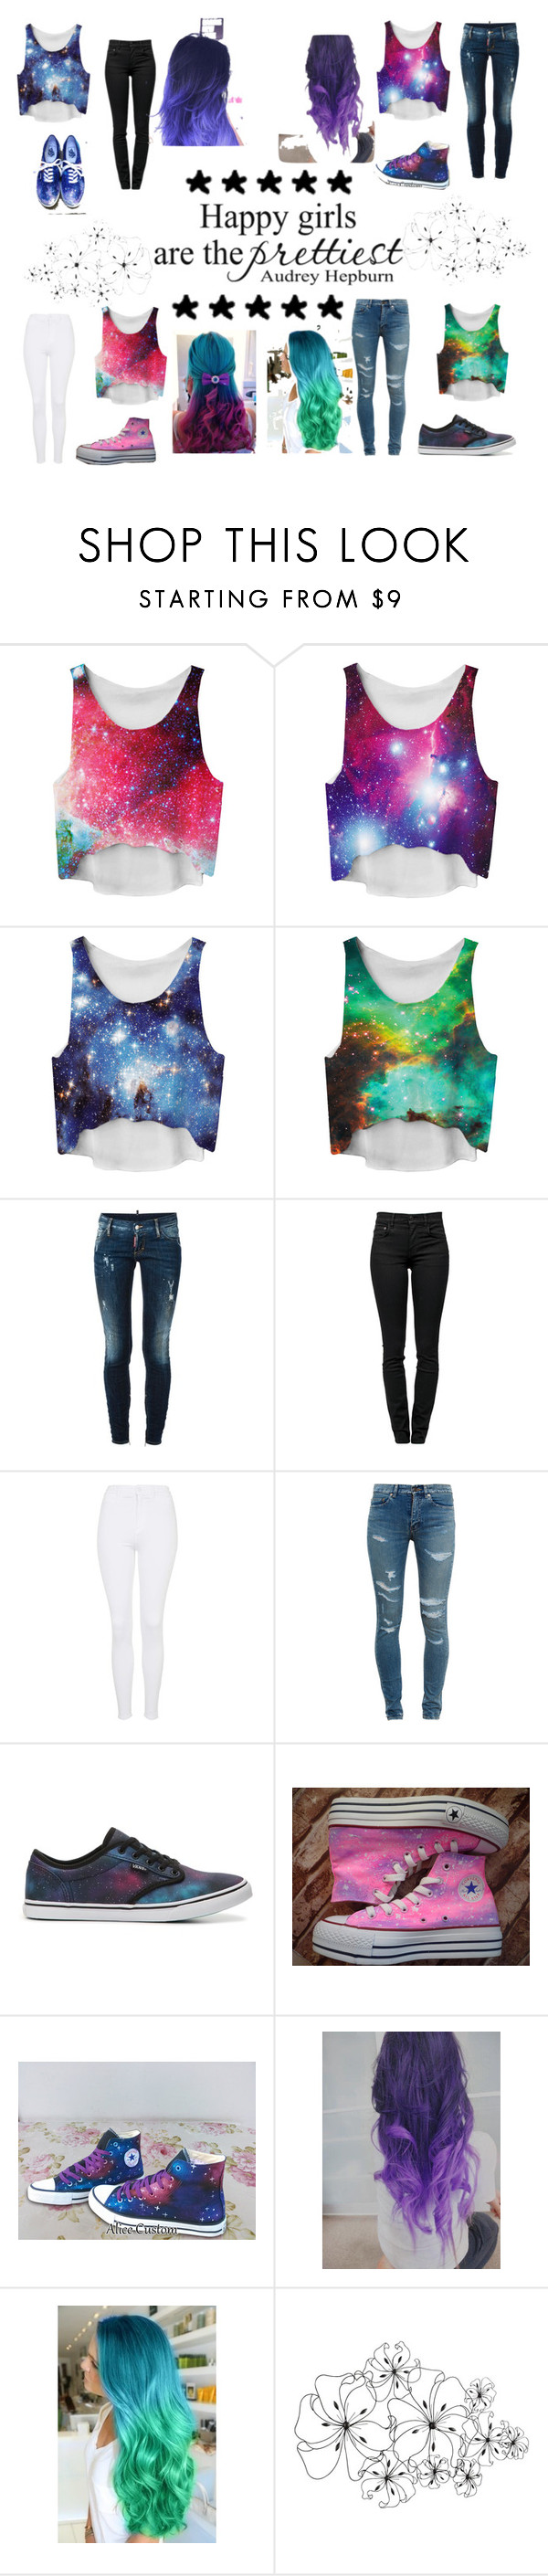 """galaxy squad outfit"" by dianewalkerjj ❤ liked on Polyvore featuring Dsquared2, Proenza Schouler, Topshop, Yves Saint Laurent, Vans, Converse, Cyan Design and galaxy"